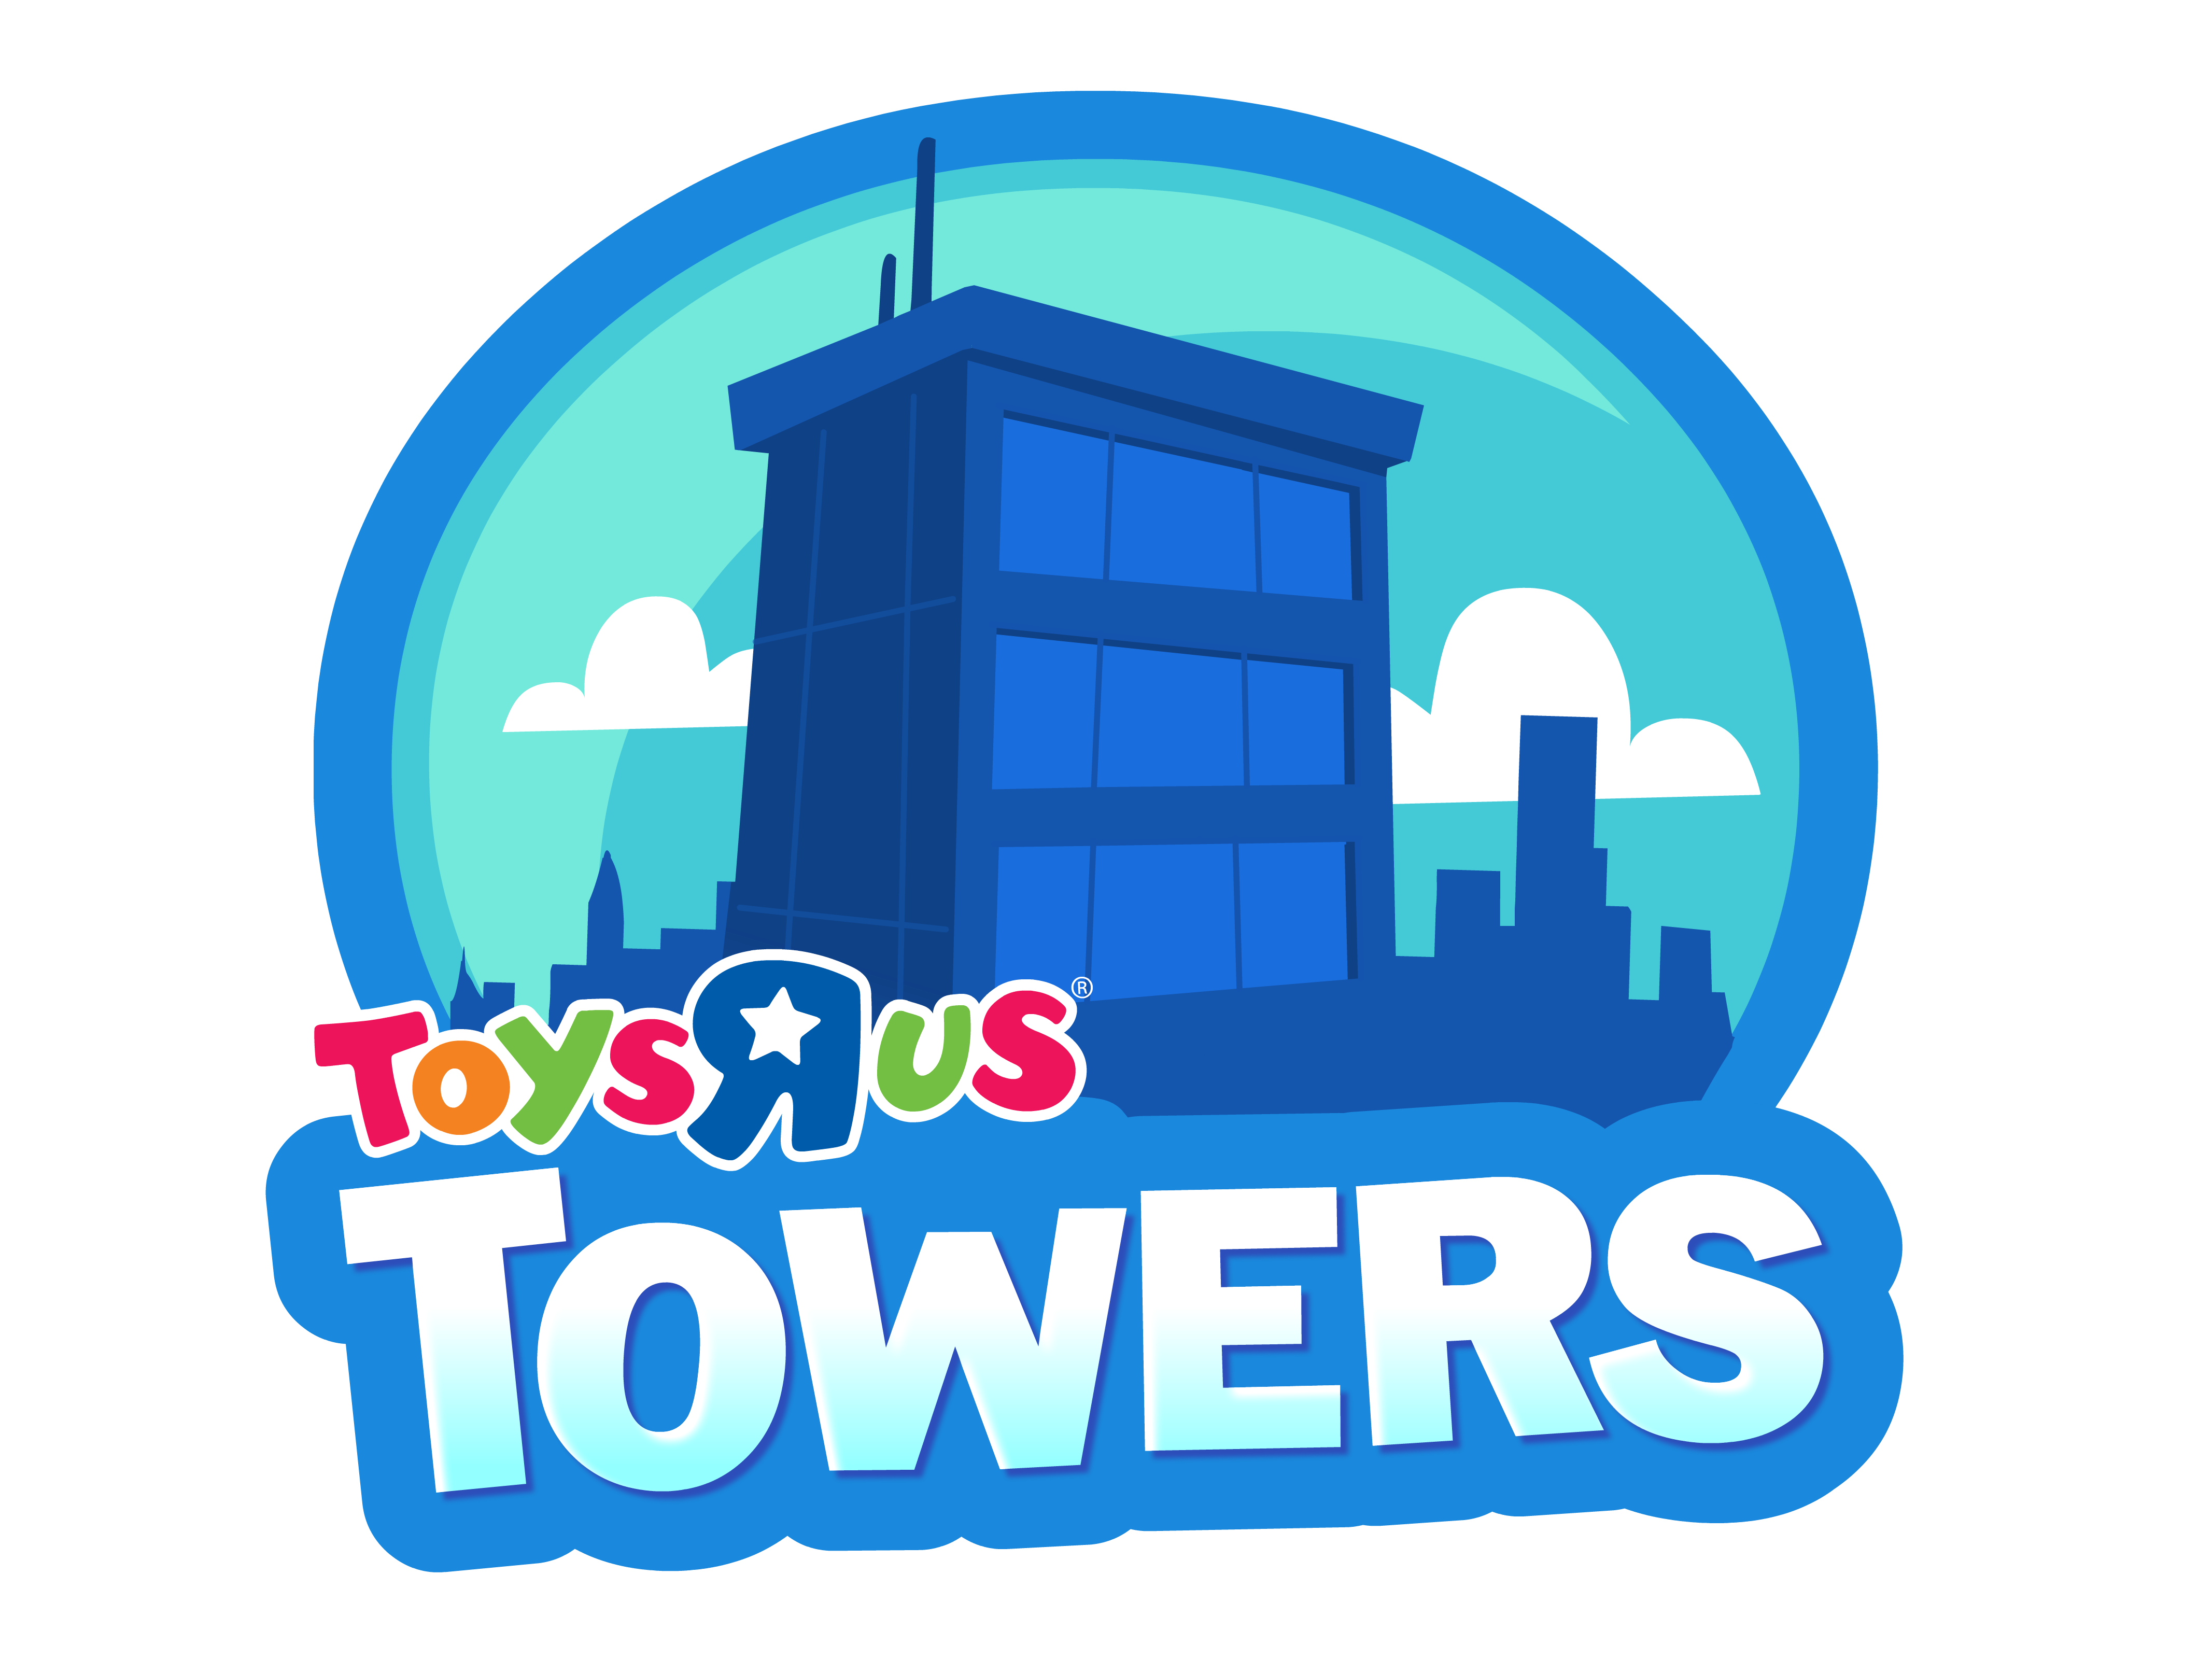 toys r us towers png logo #4340